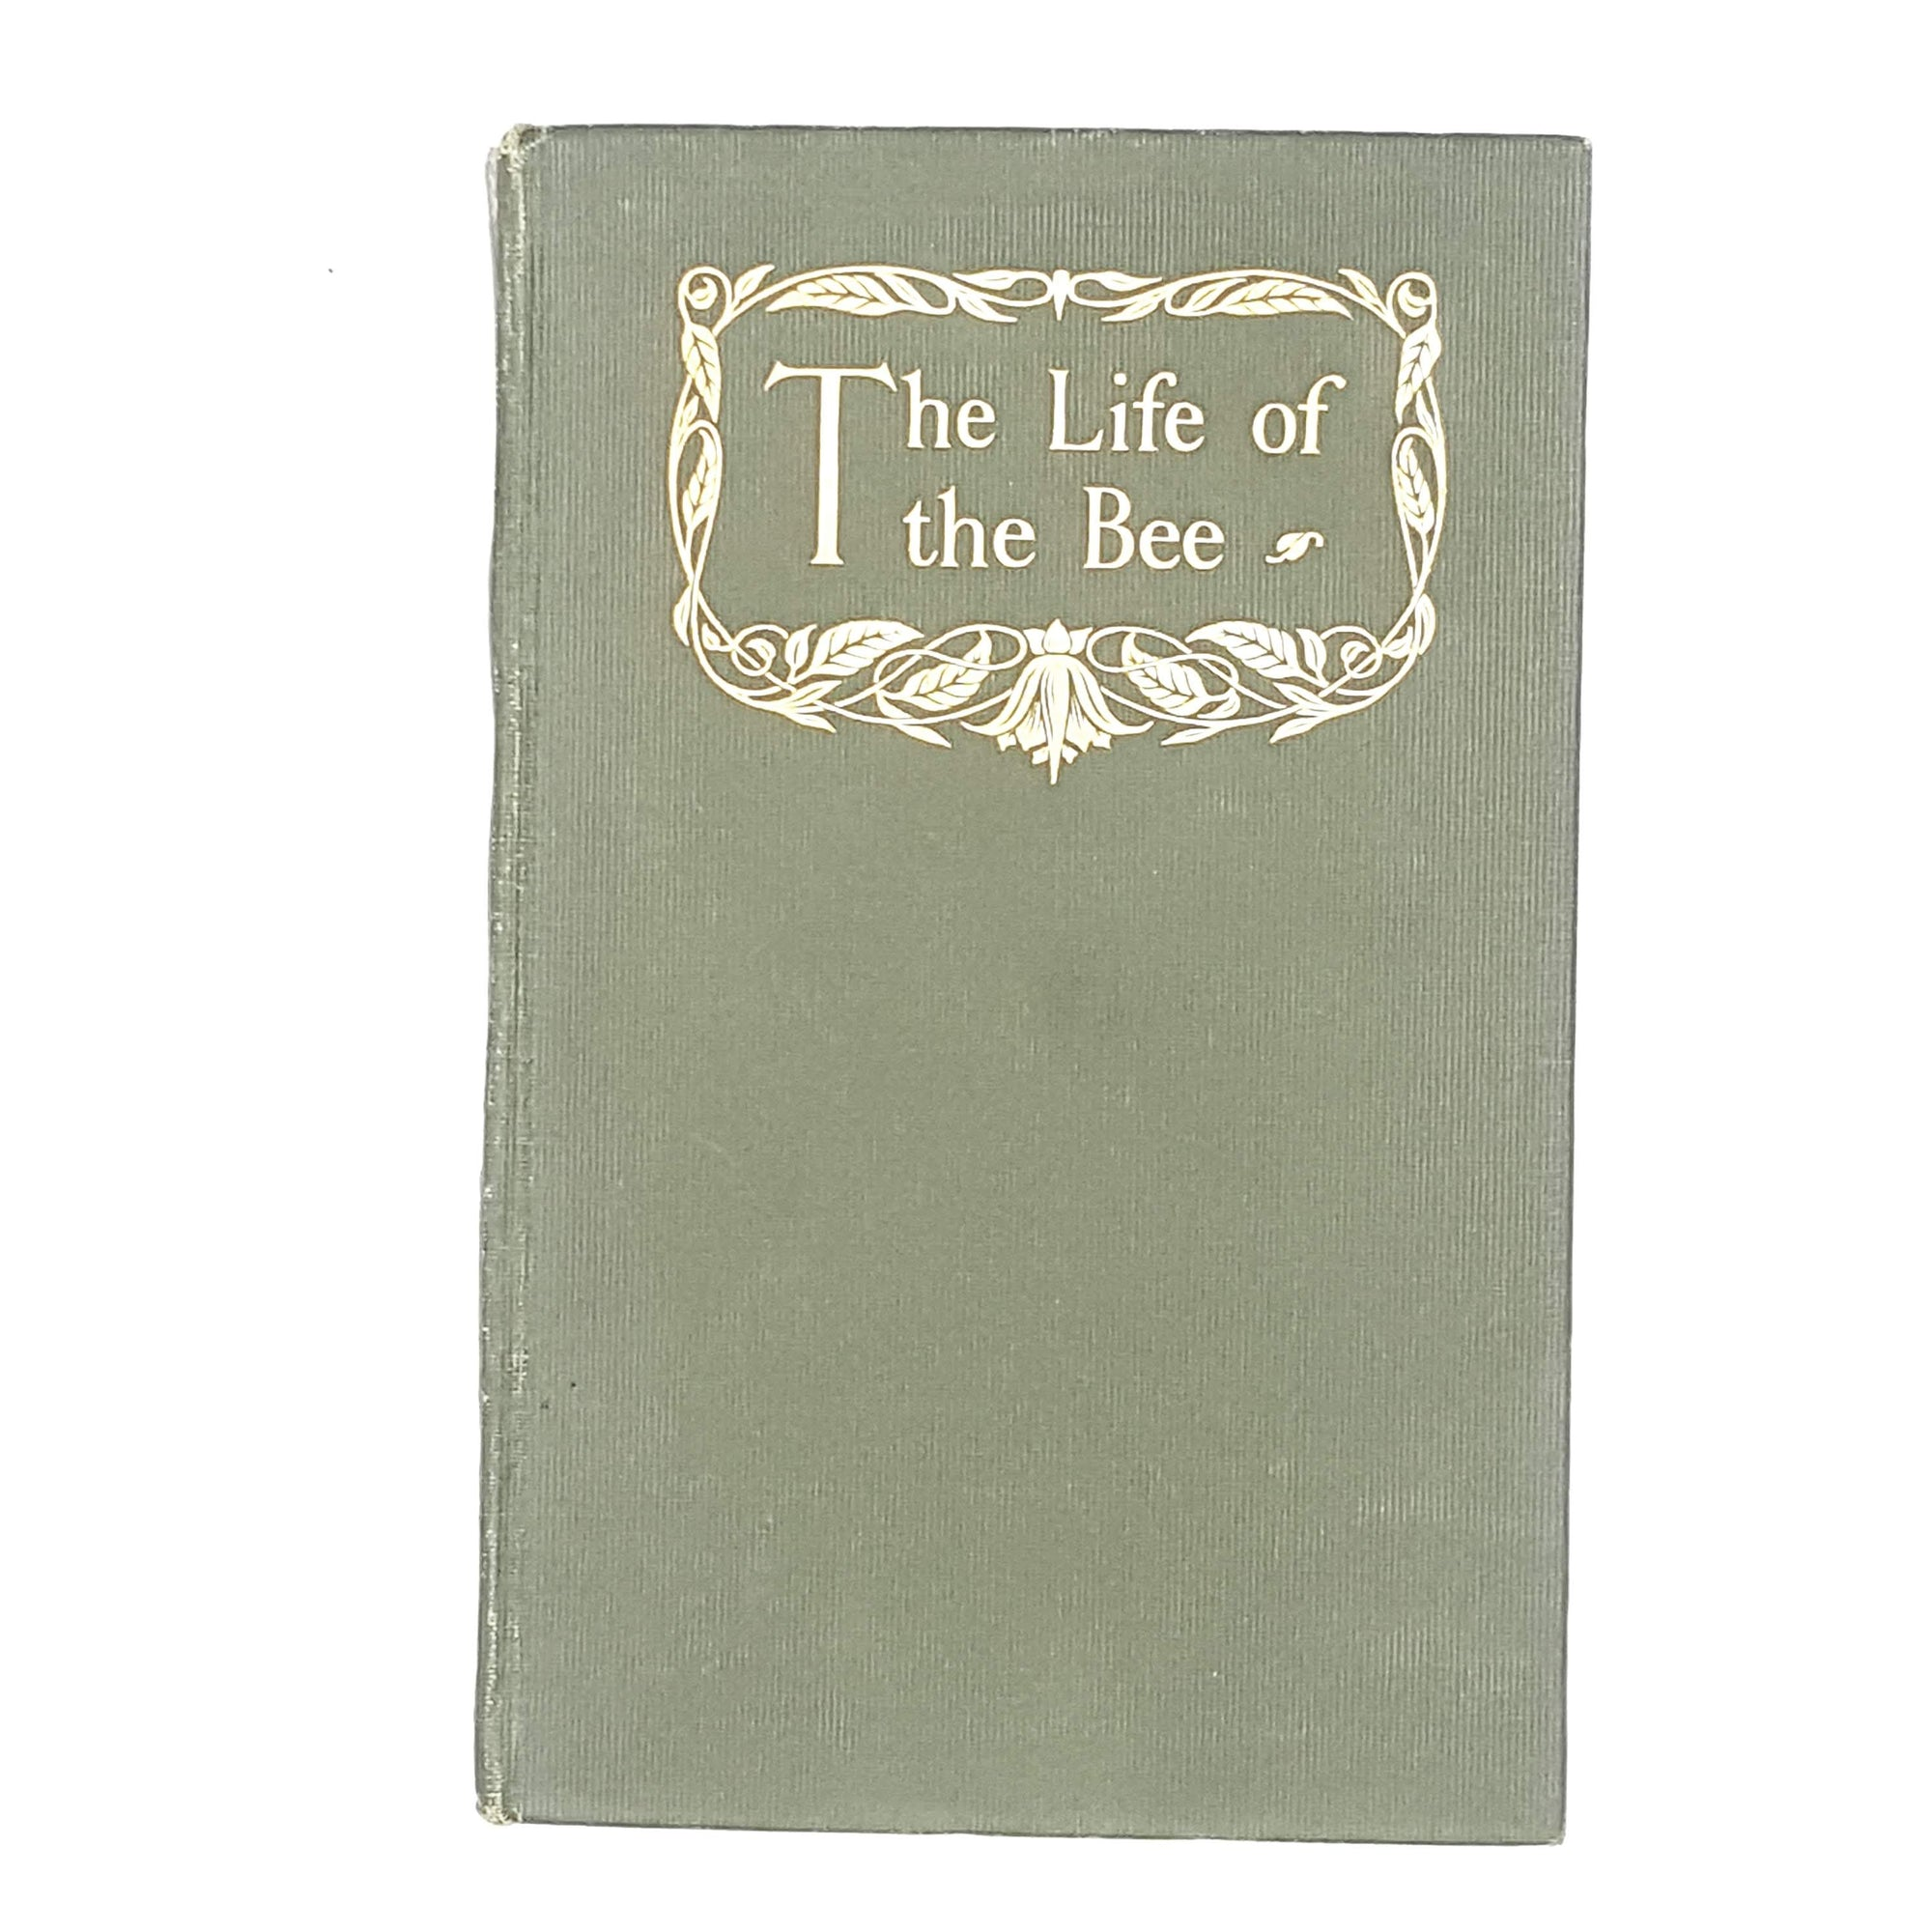 The Life of the Bee by Maurice Maeterlinck 1930